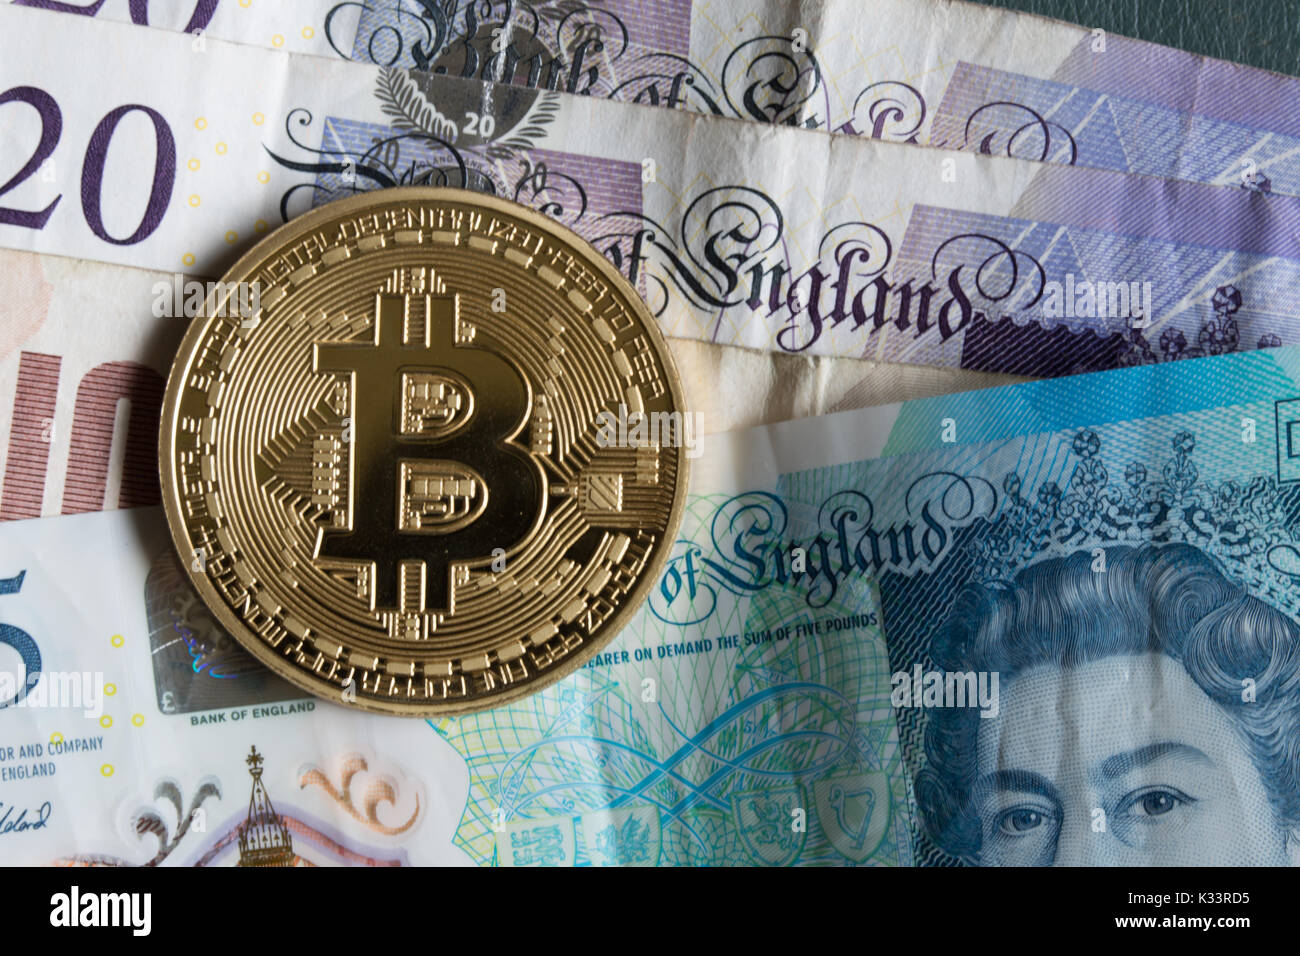 A bitcoin on top of GB Sterling notes - Stock Image